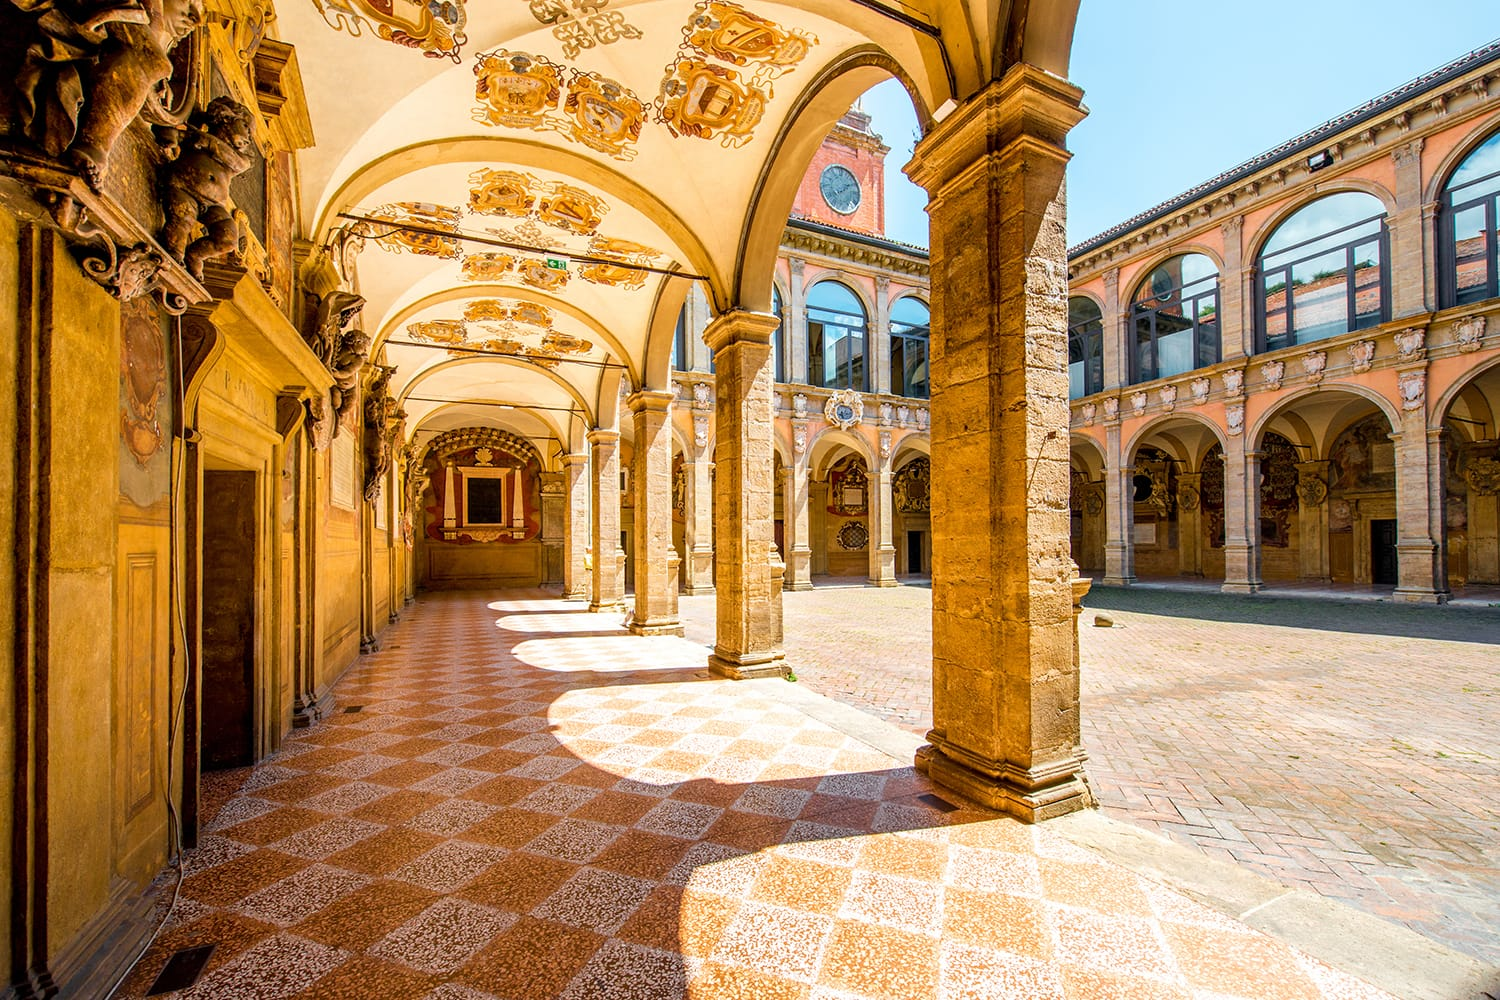 Inner yard of Archiginnasio of Bologna that houses now Municipal Library and the famous Anatomical Theatre. It is one of the most important building in Bologna, Italy.